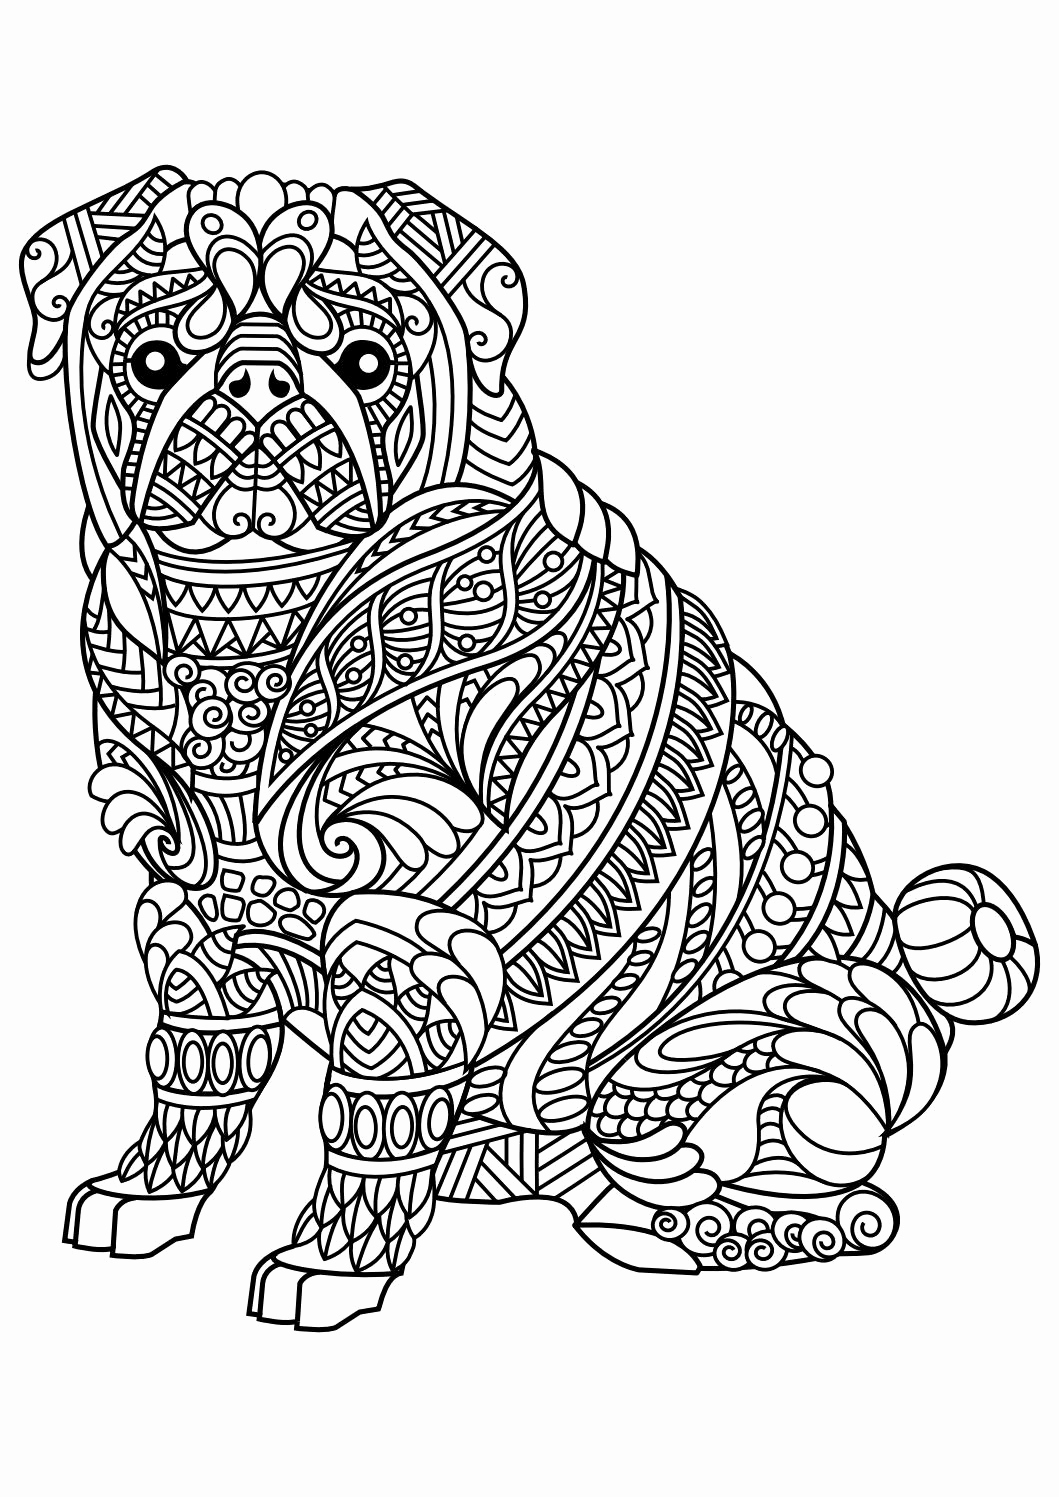 1059x1497 Coloring Pages Difficult Elegant Animal Coloring Pages Pdf Adult